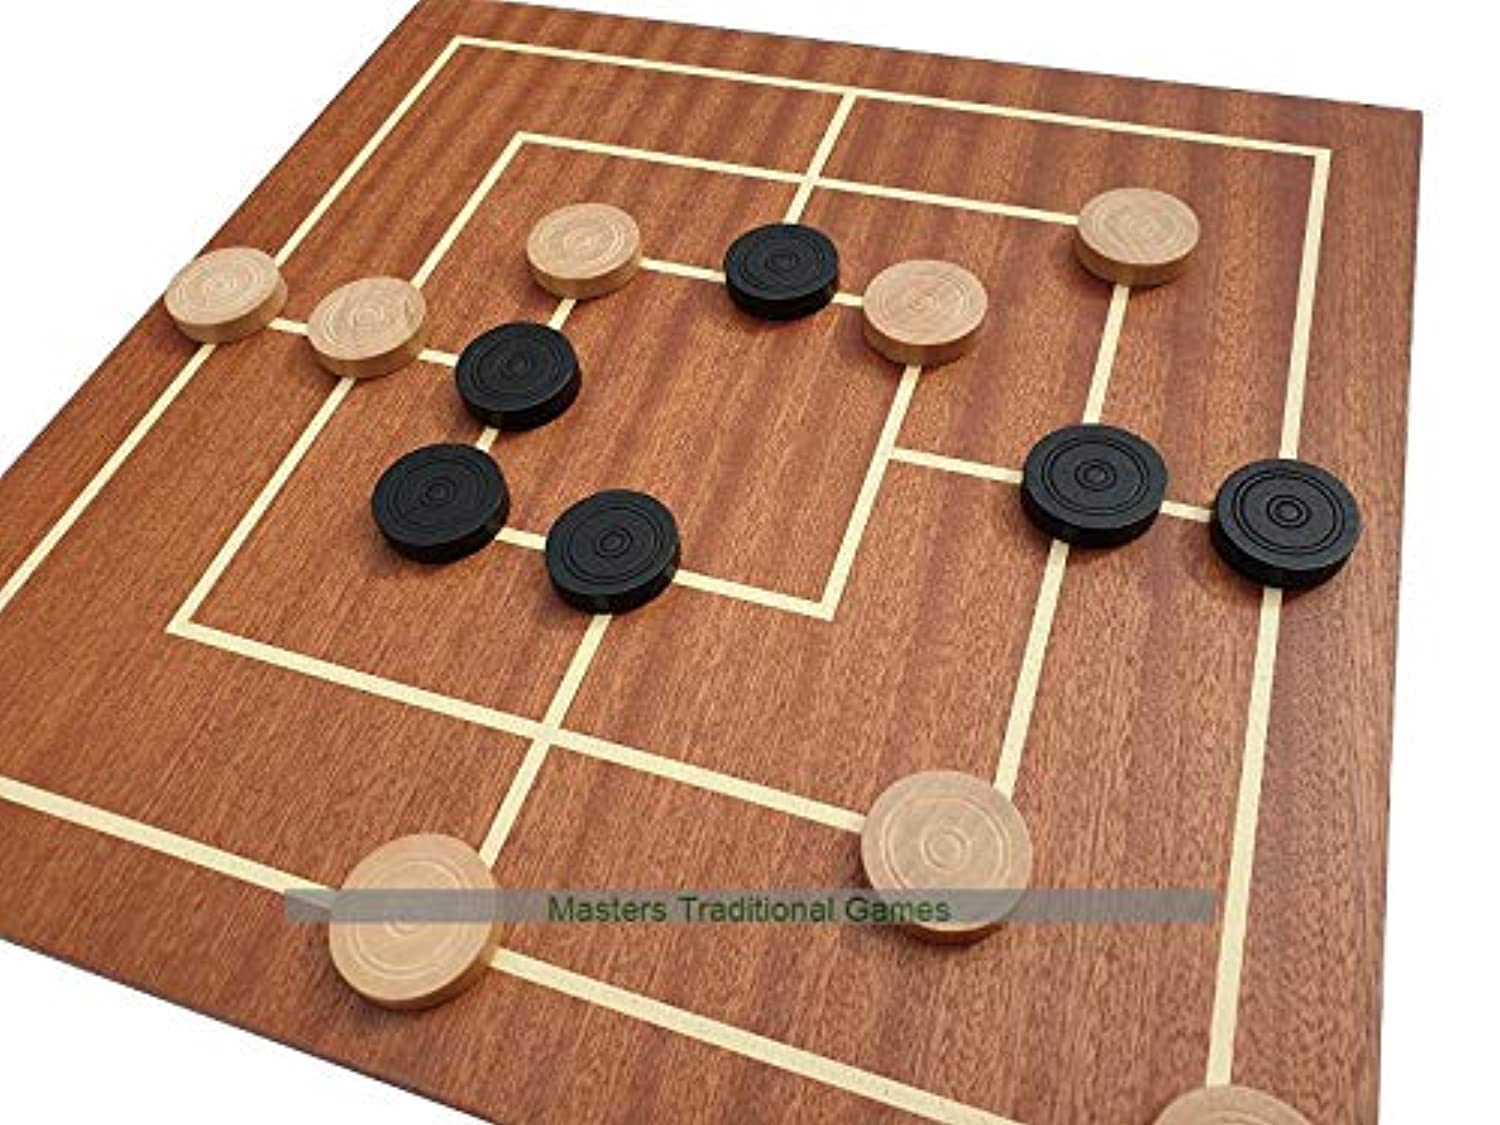 Dal Negro Nine Men's Morris Board and Wooden Pieces